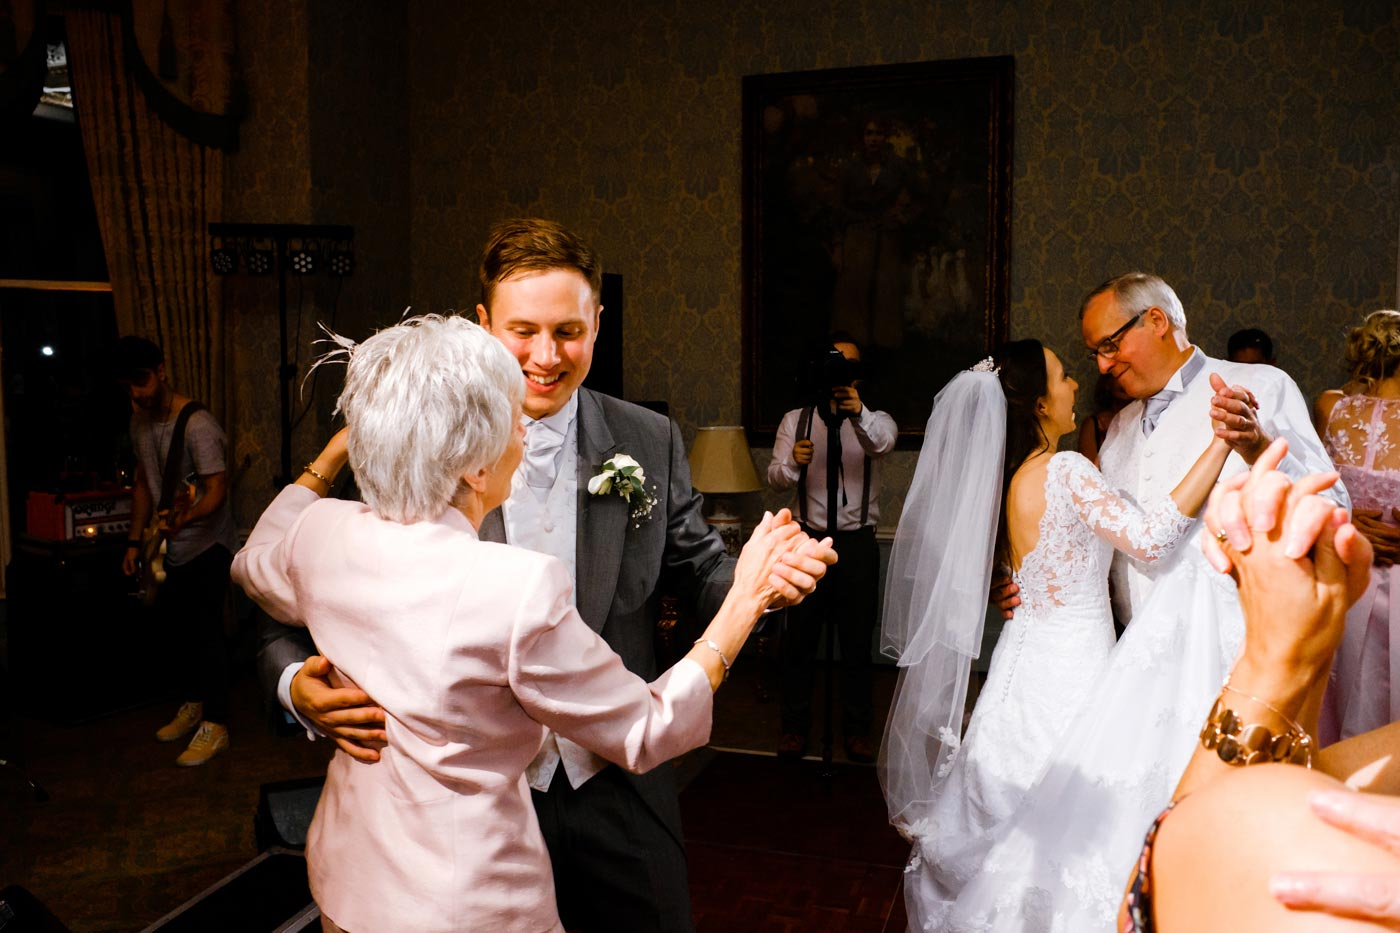 Groom dancing with his mother while bride dances with her father in the background at Ettington Park Hotel